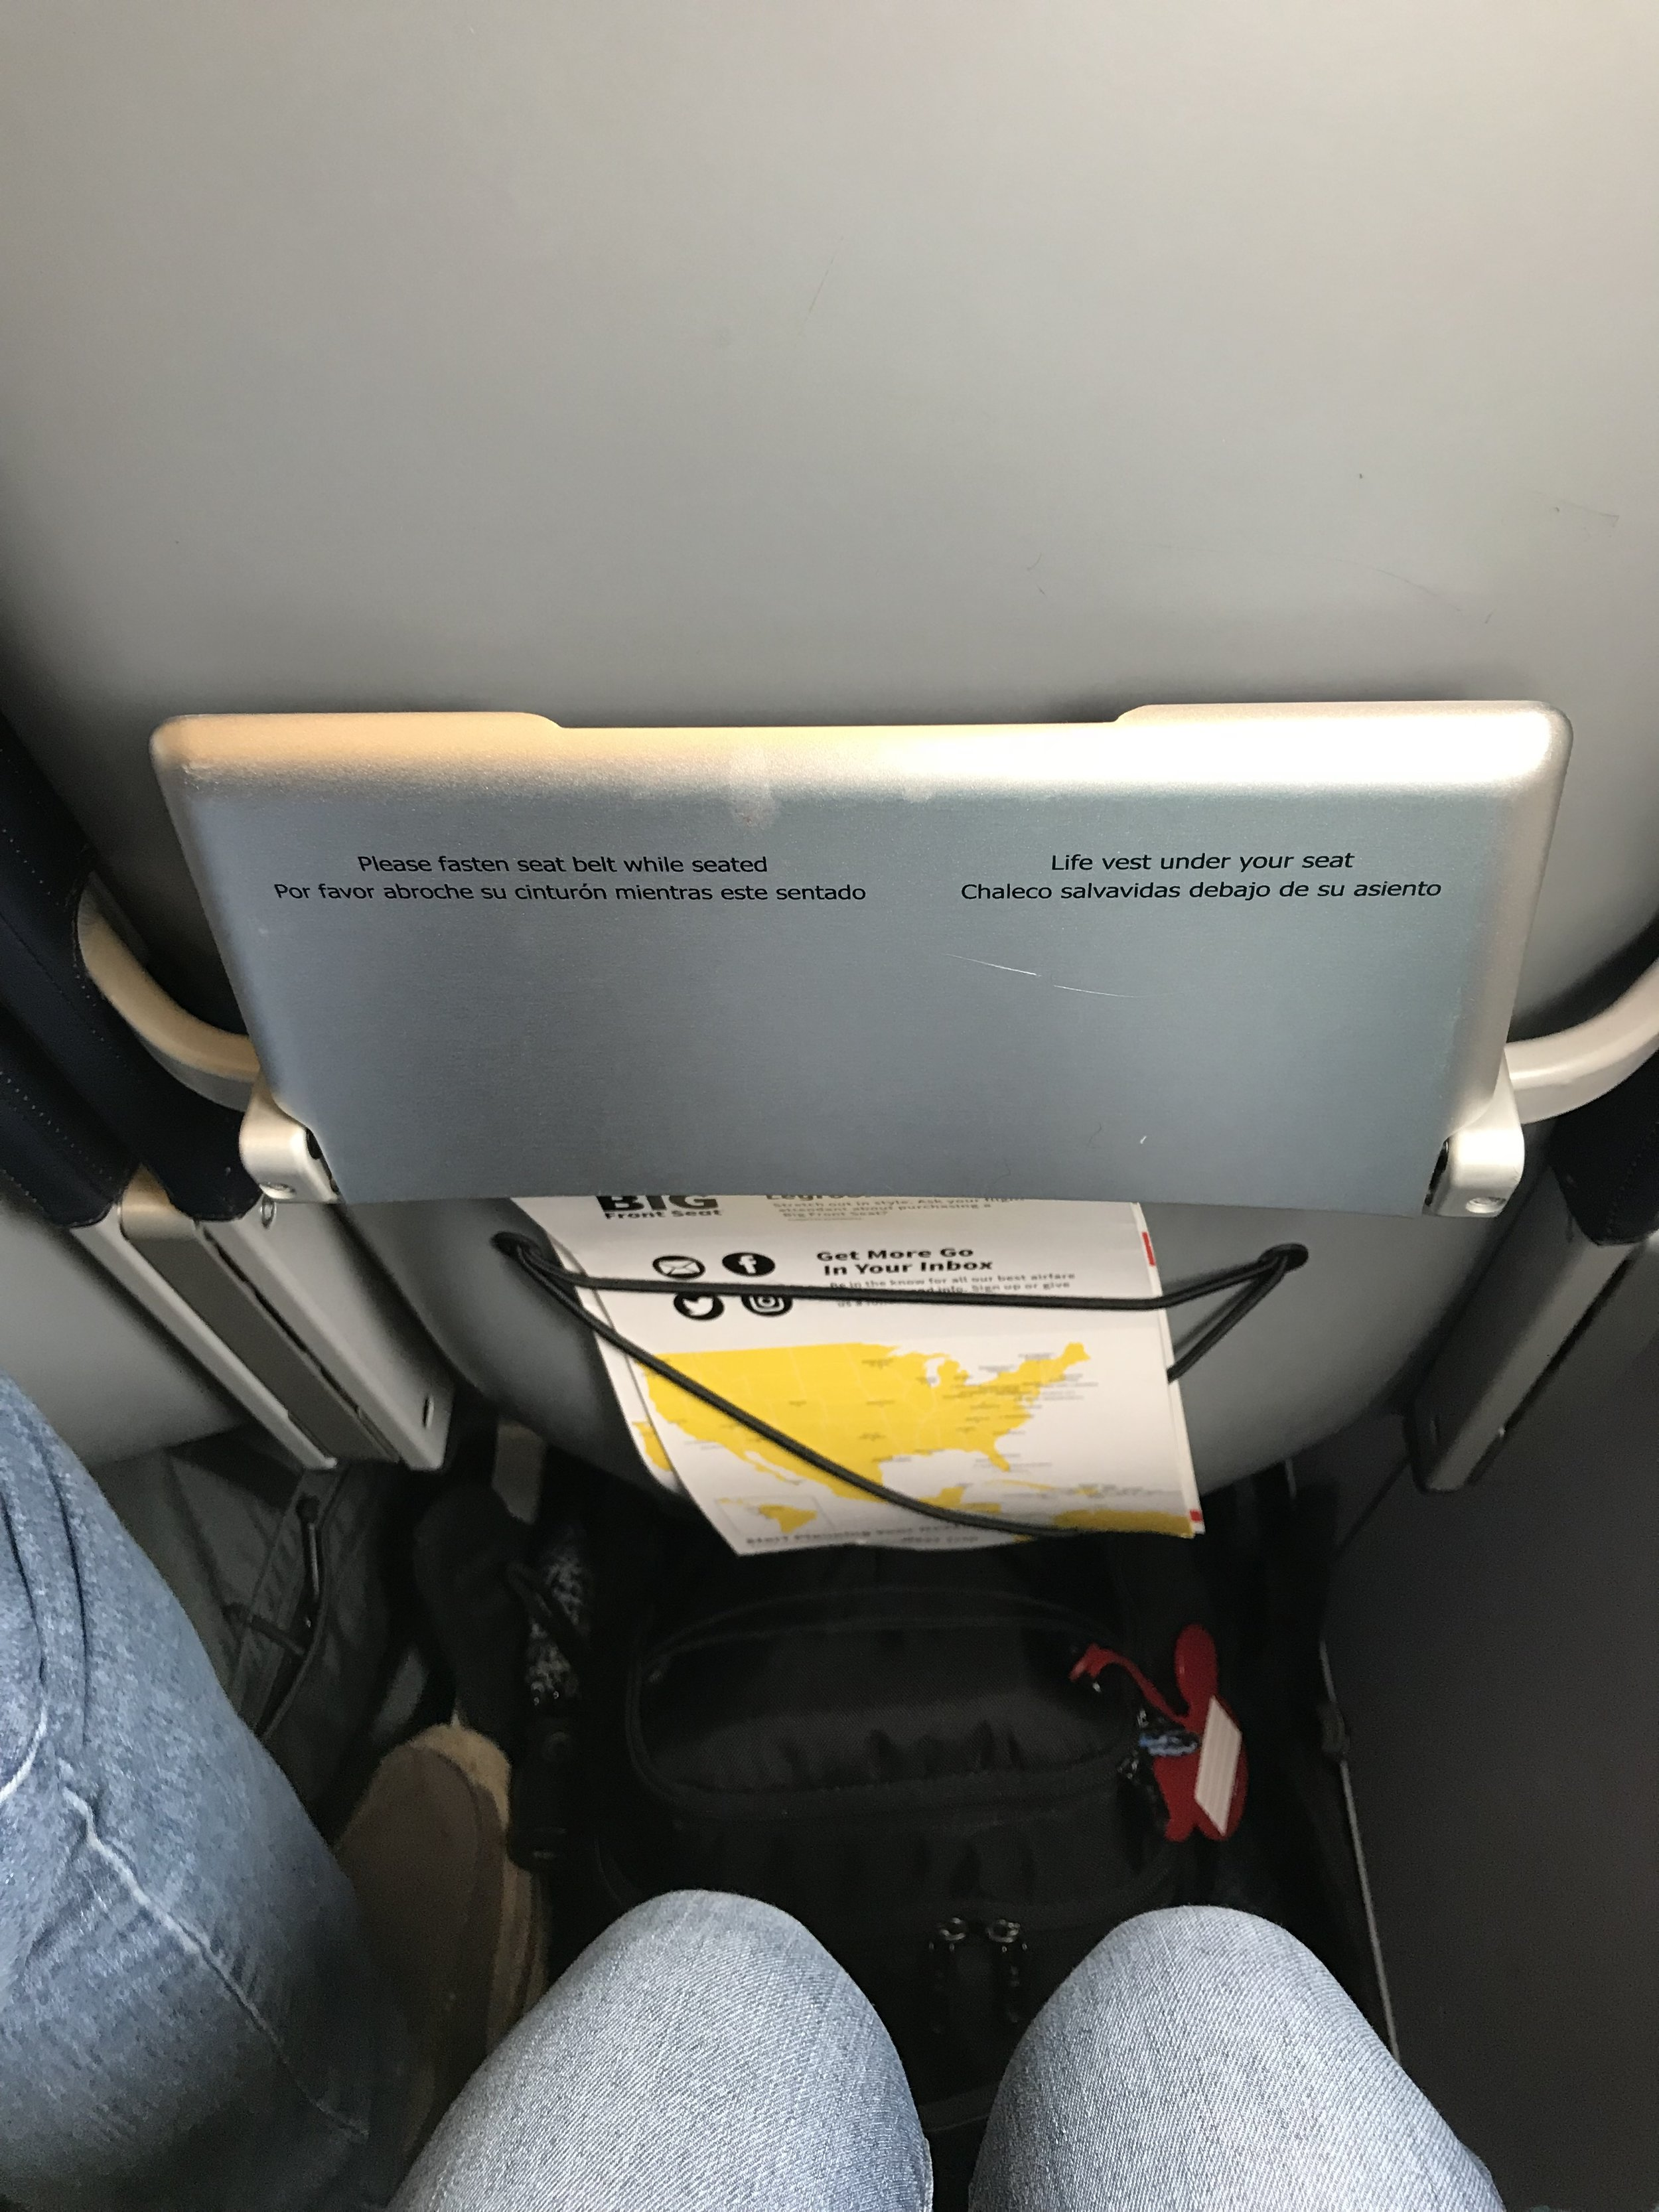 The tiniest tray table ever!